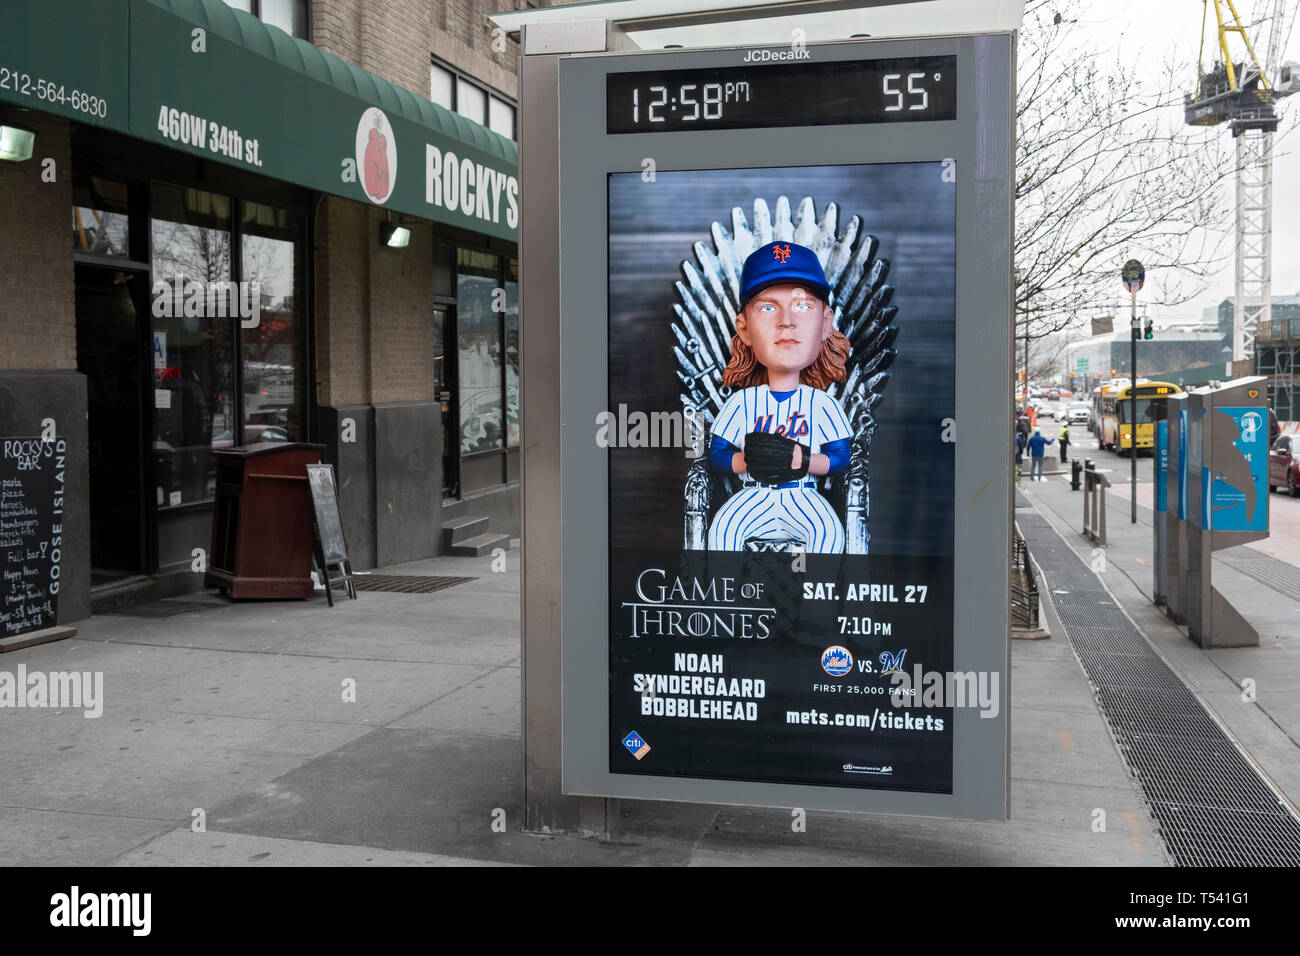 An advertisement for the Game of Thrones & Noah Syndergard bobblehead night. On a sheltered bus top on West 34th St. in Manhattan, New York City. Stock Photo